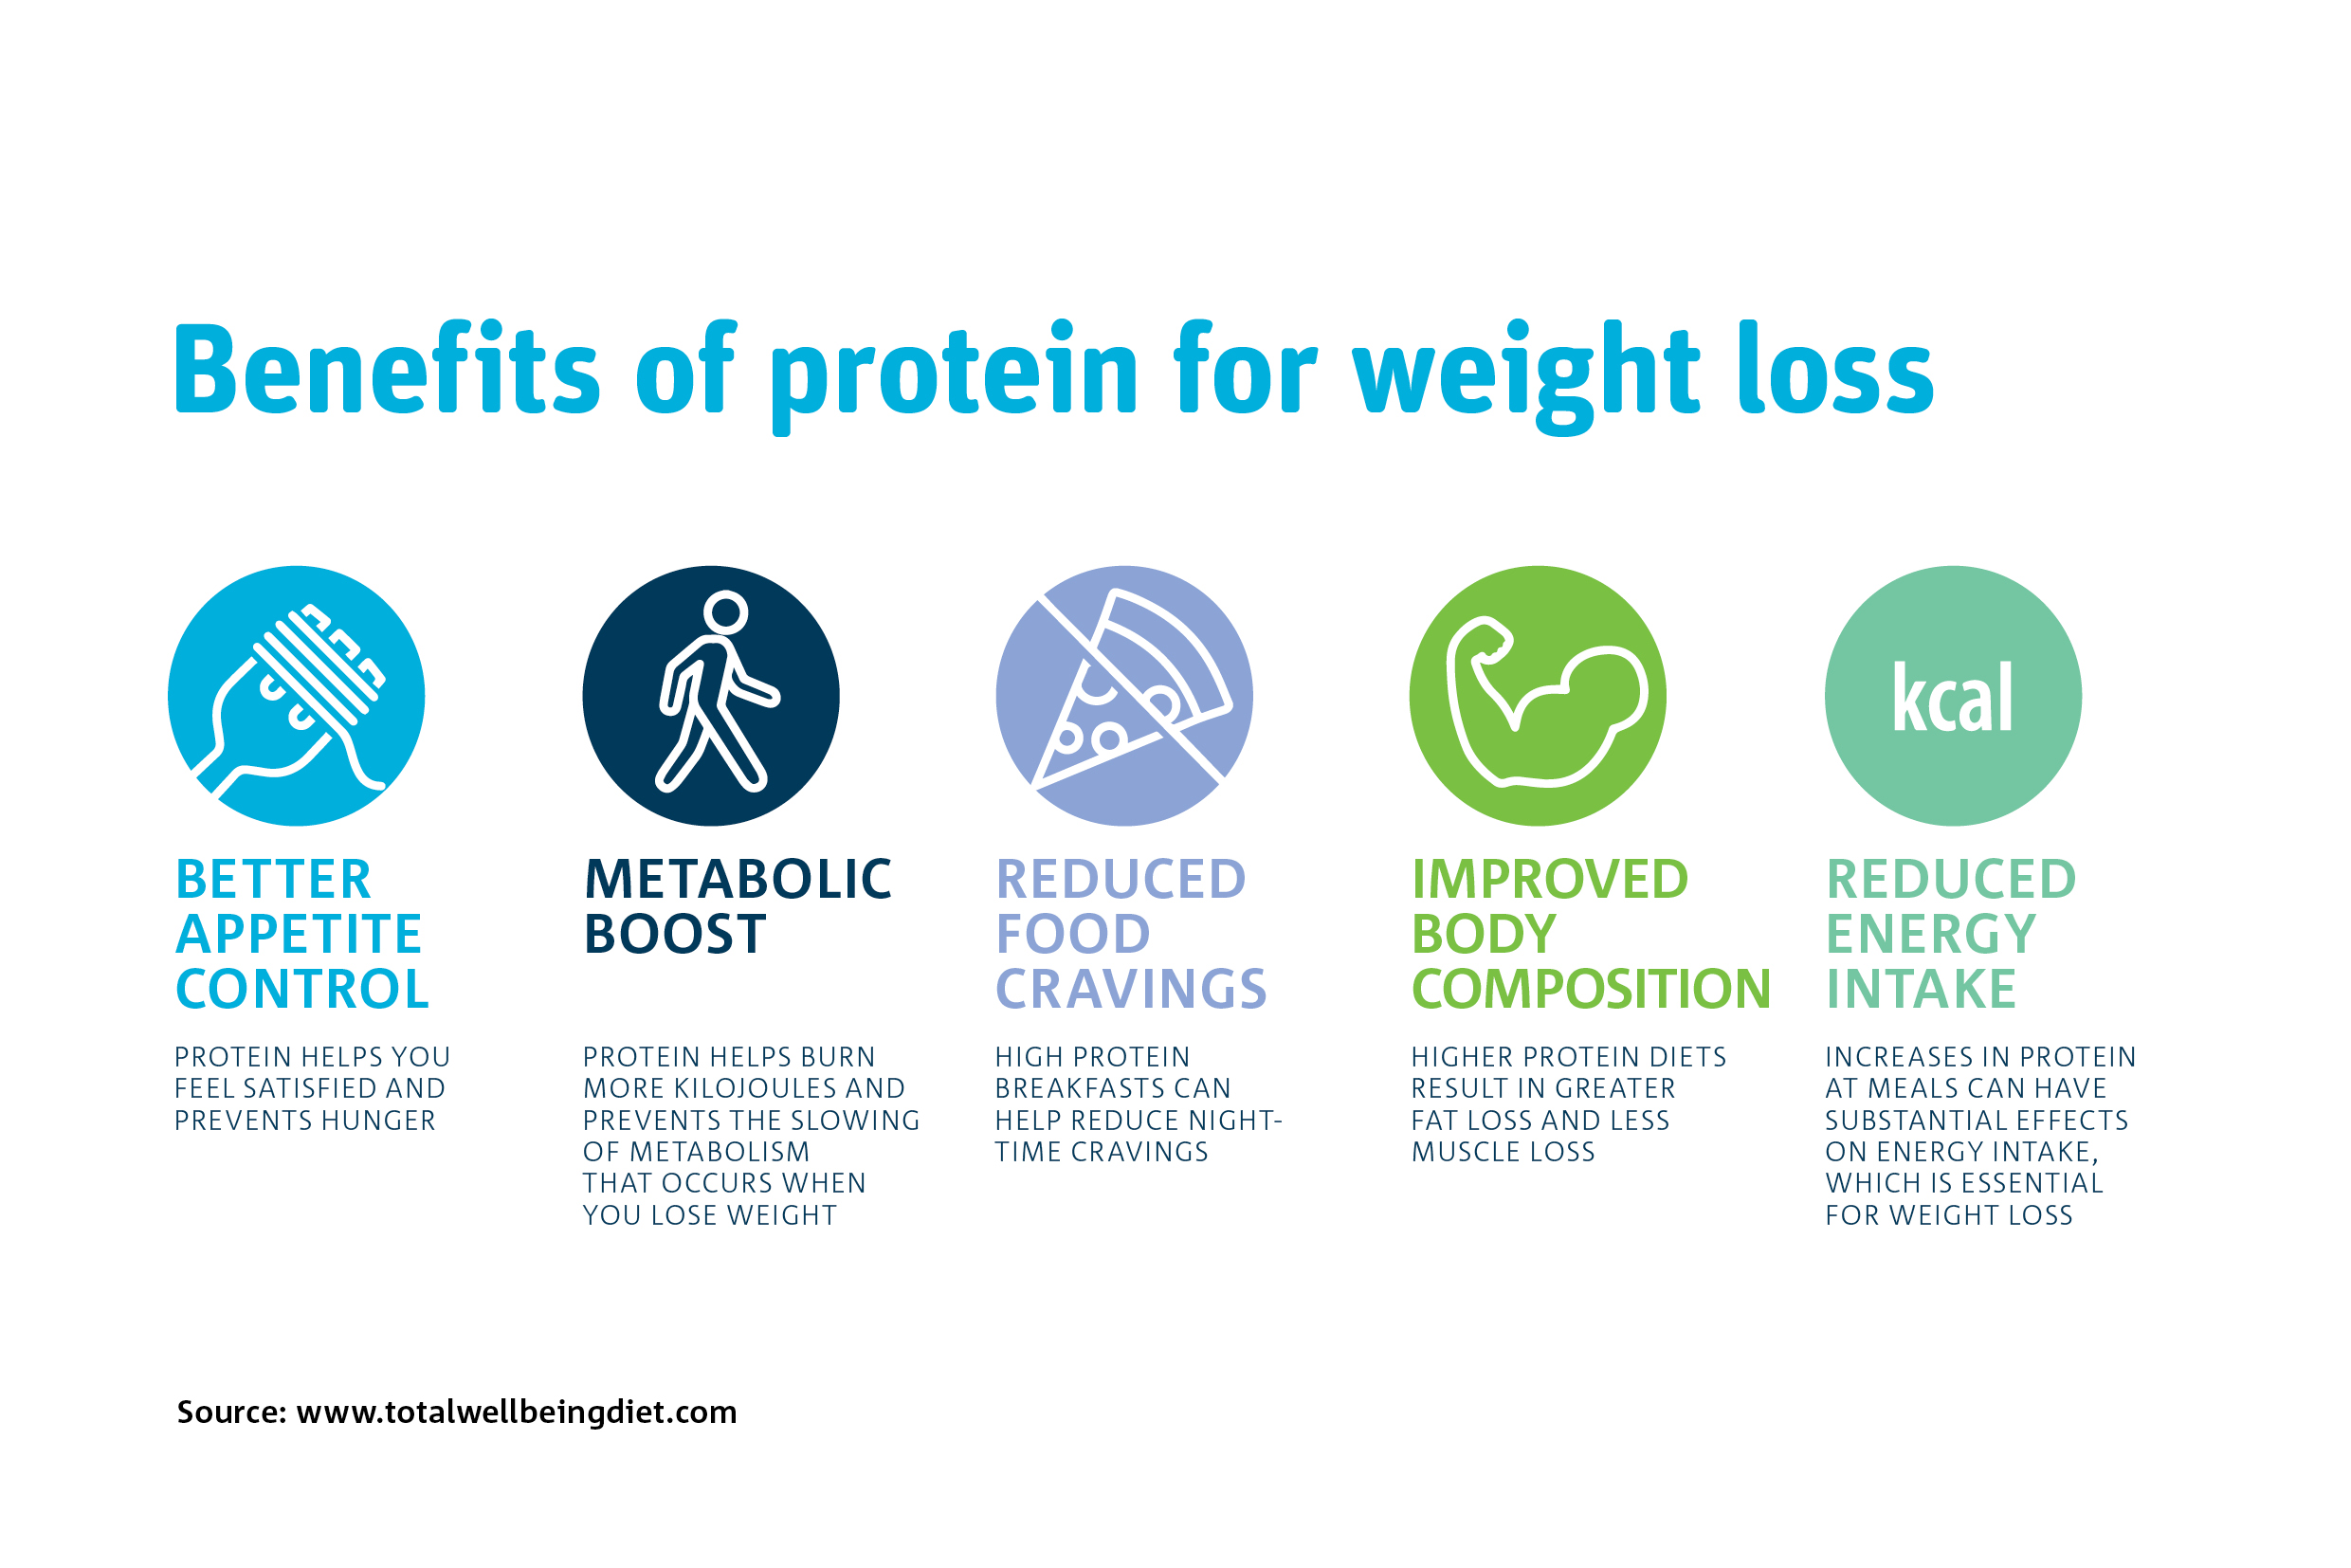 Benefits Of Protein For Weight Loss